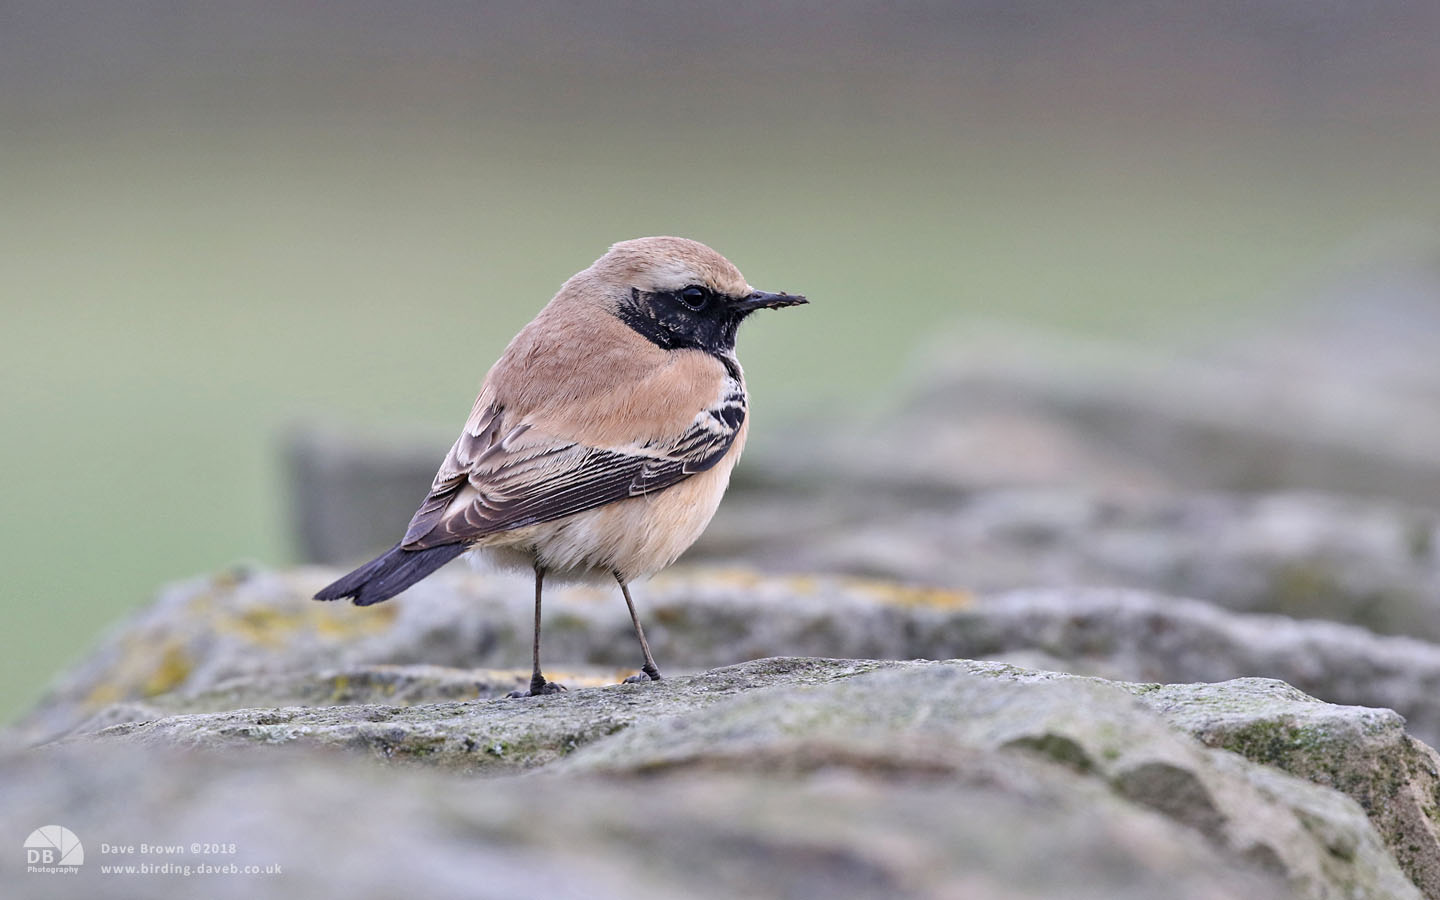 Desert Wheatear at Whitby, 4th January 2018